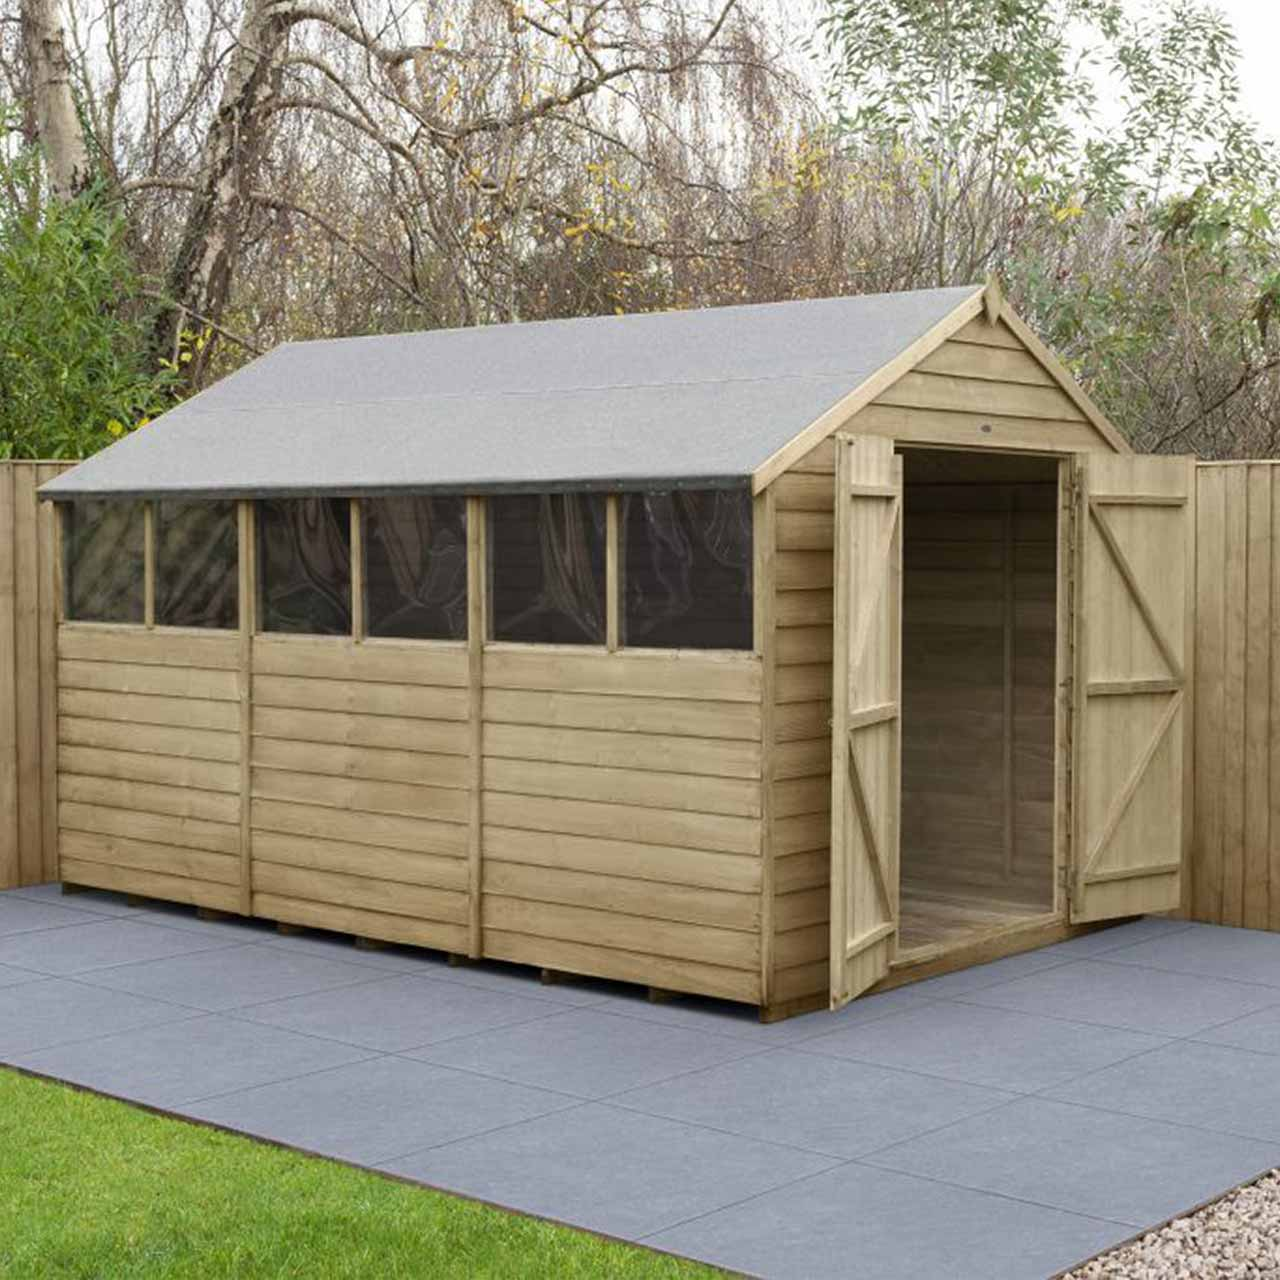 Overlap Pressure Treated 12×8 Apex Shed – Double Door